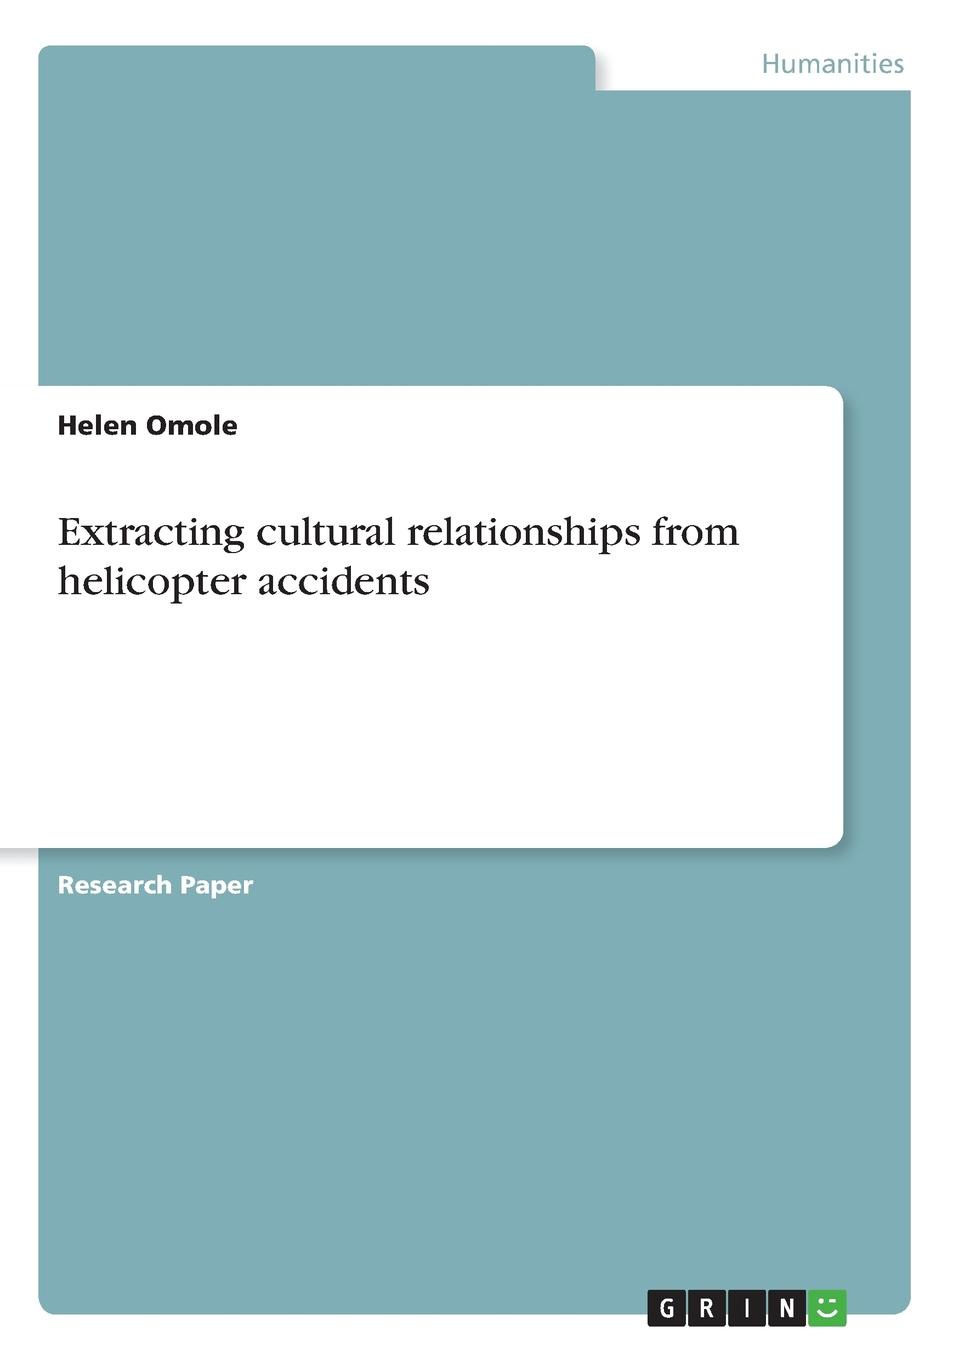 Helen Omole Extracting cultural relationships from helicopter accidents an accident in august